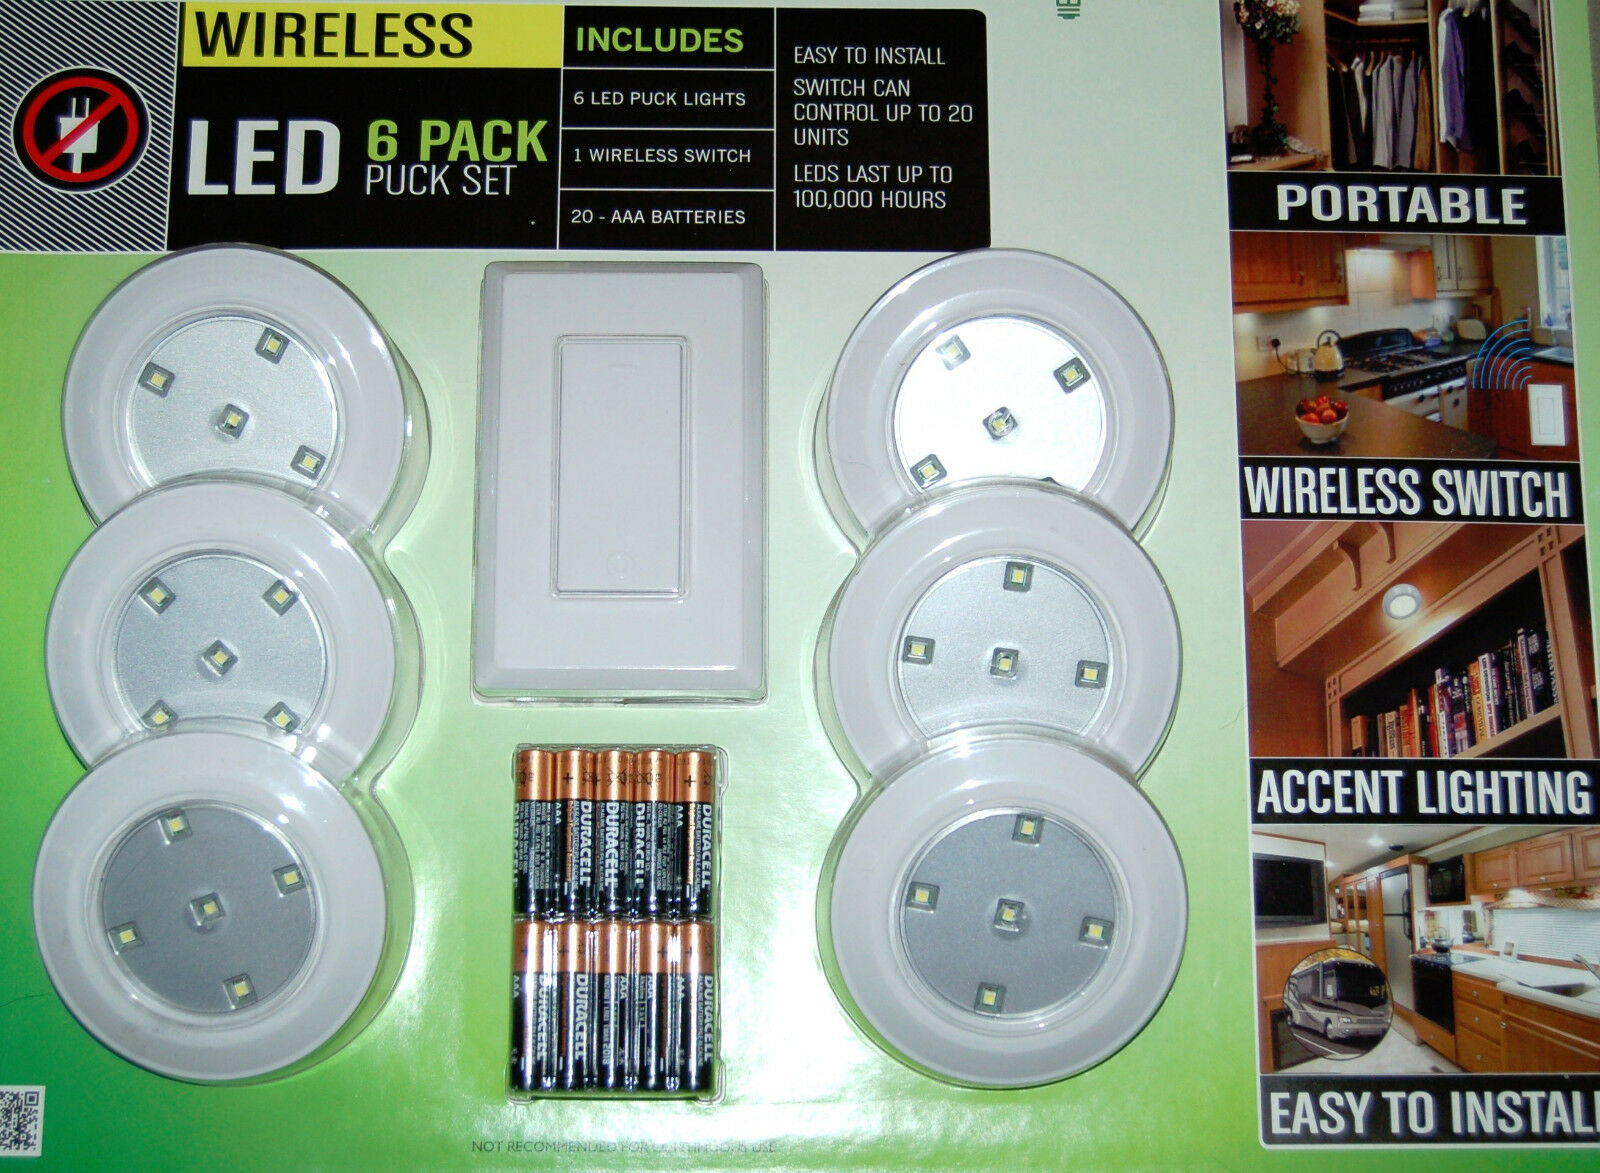 Lightmates led wireless puck lights with remote batteries 6 pack.